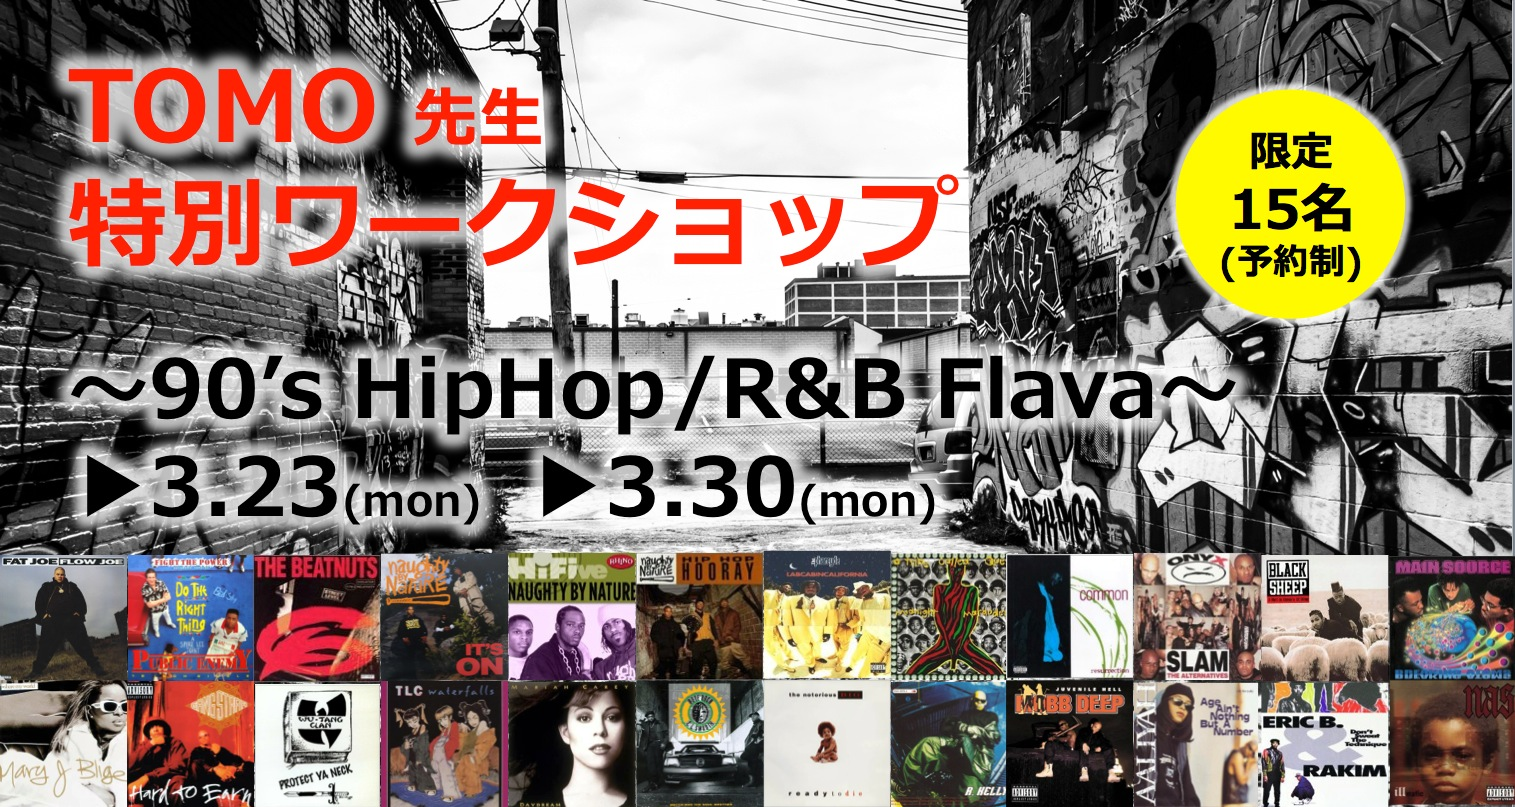 Tomo/90's HIPHOP/R&B Flavaワークショップ